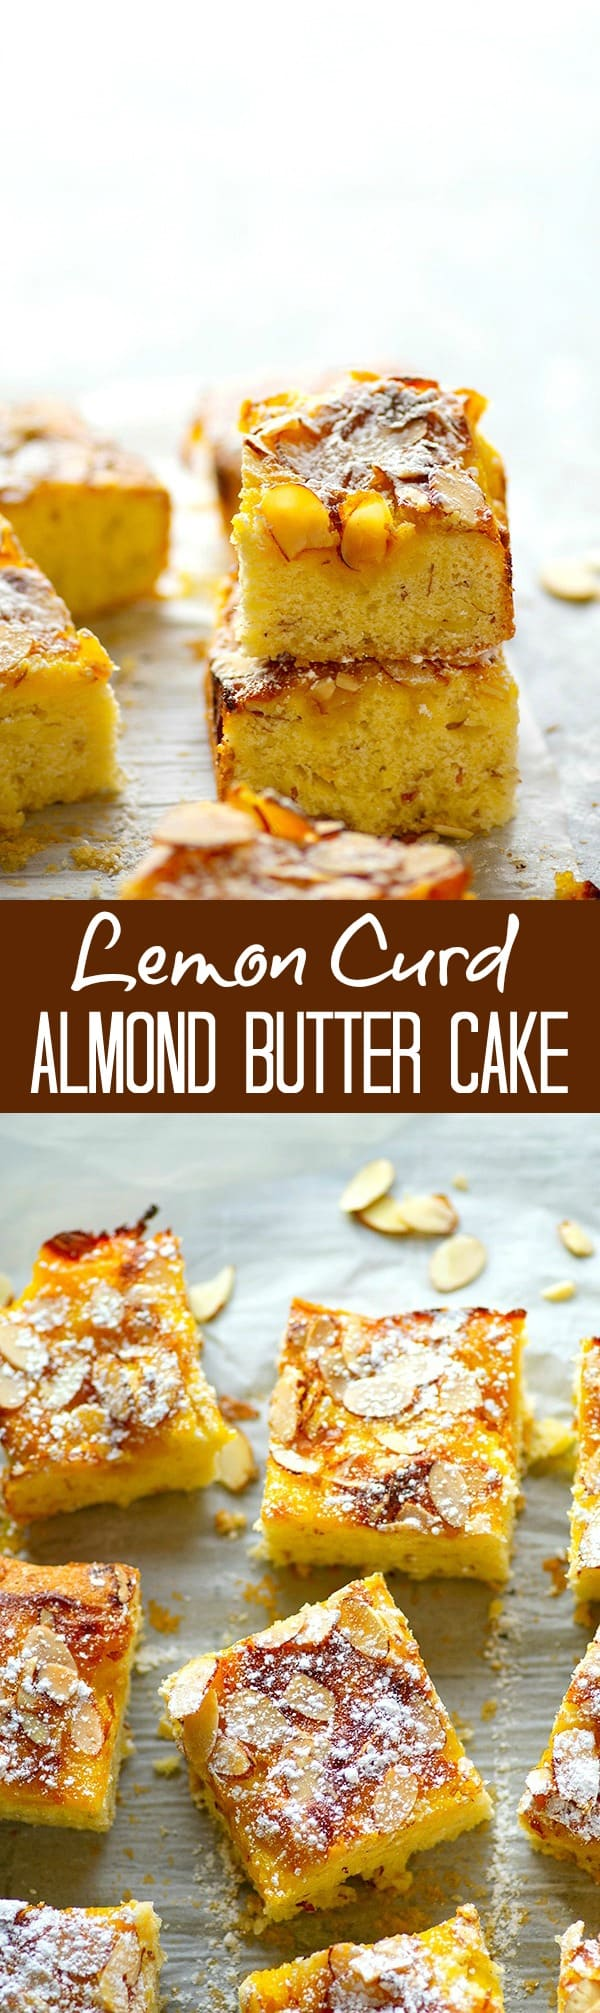 Lemon Curd Almond Butter Cake - Tangy homemade lemon curd and toasty almonds are a match made in heaven in this beautiful lemon curd almond butter cake!